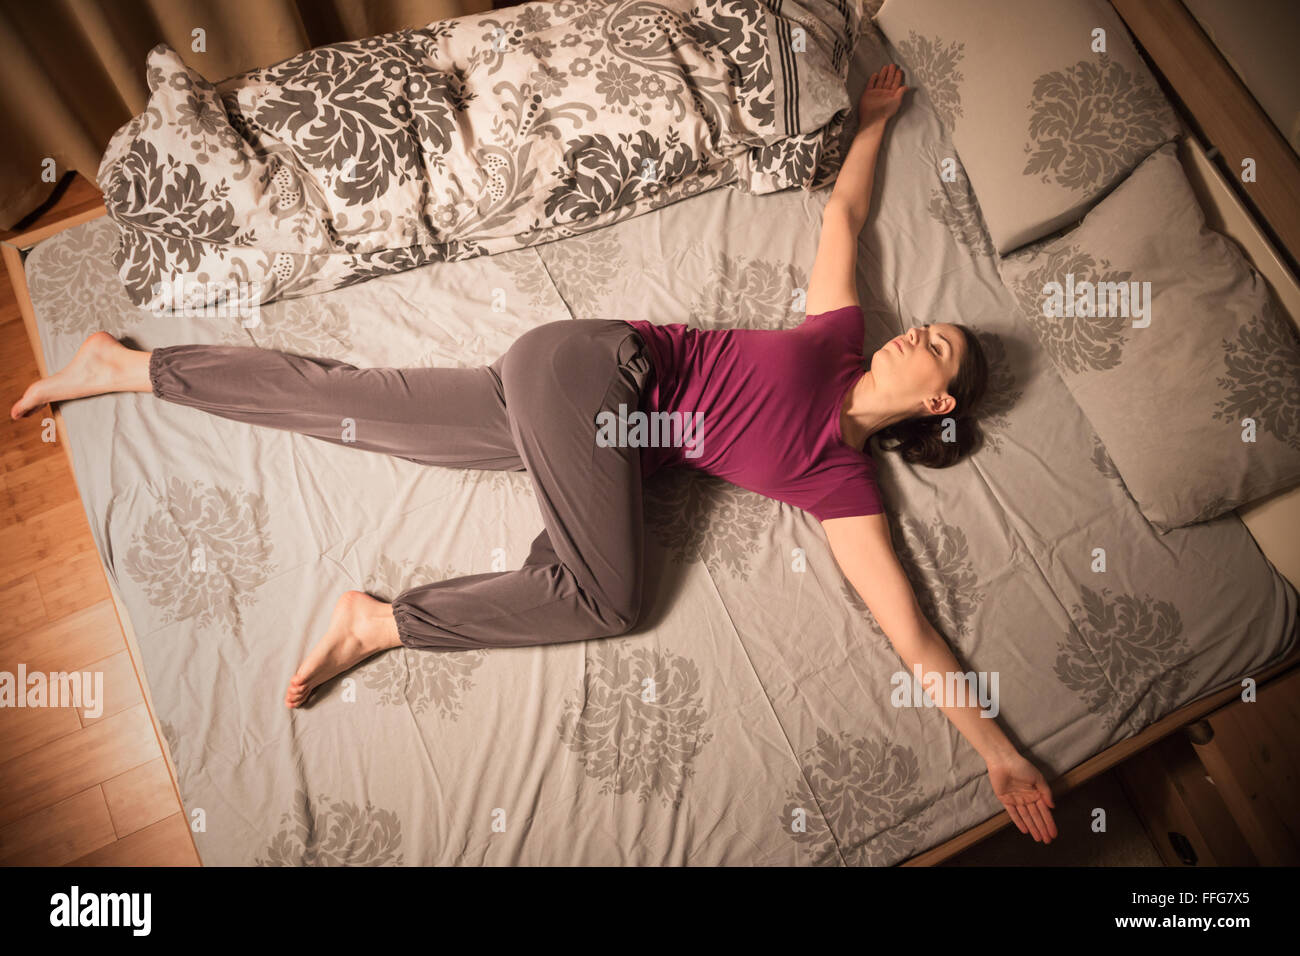 Young woman doing the Reclining Spinal Twist yoga pose before going to sleep. - Stock Image